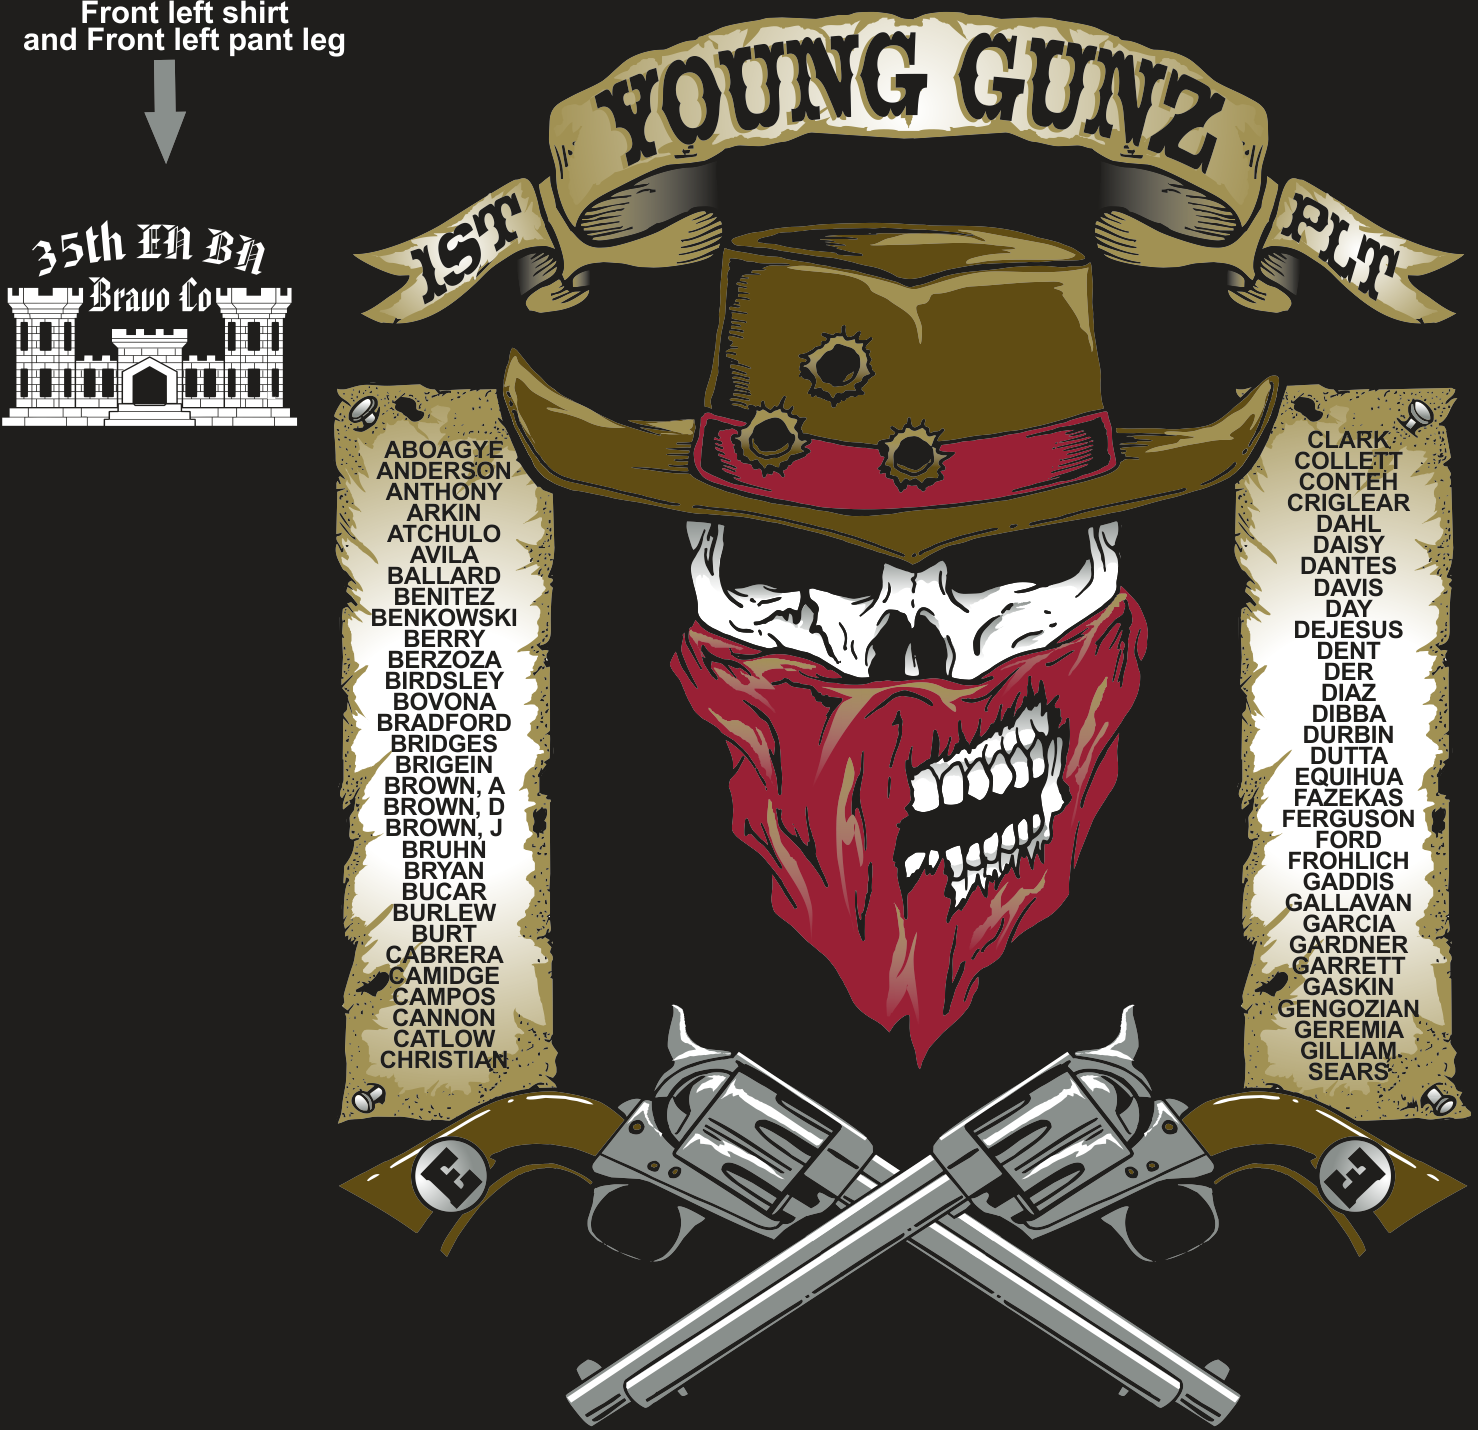 BRAVO 35TH YOUNG GUNZ GRADUATING DAY 2-24-2017 digital